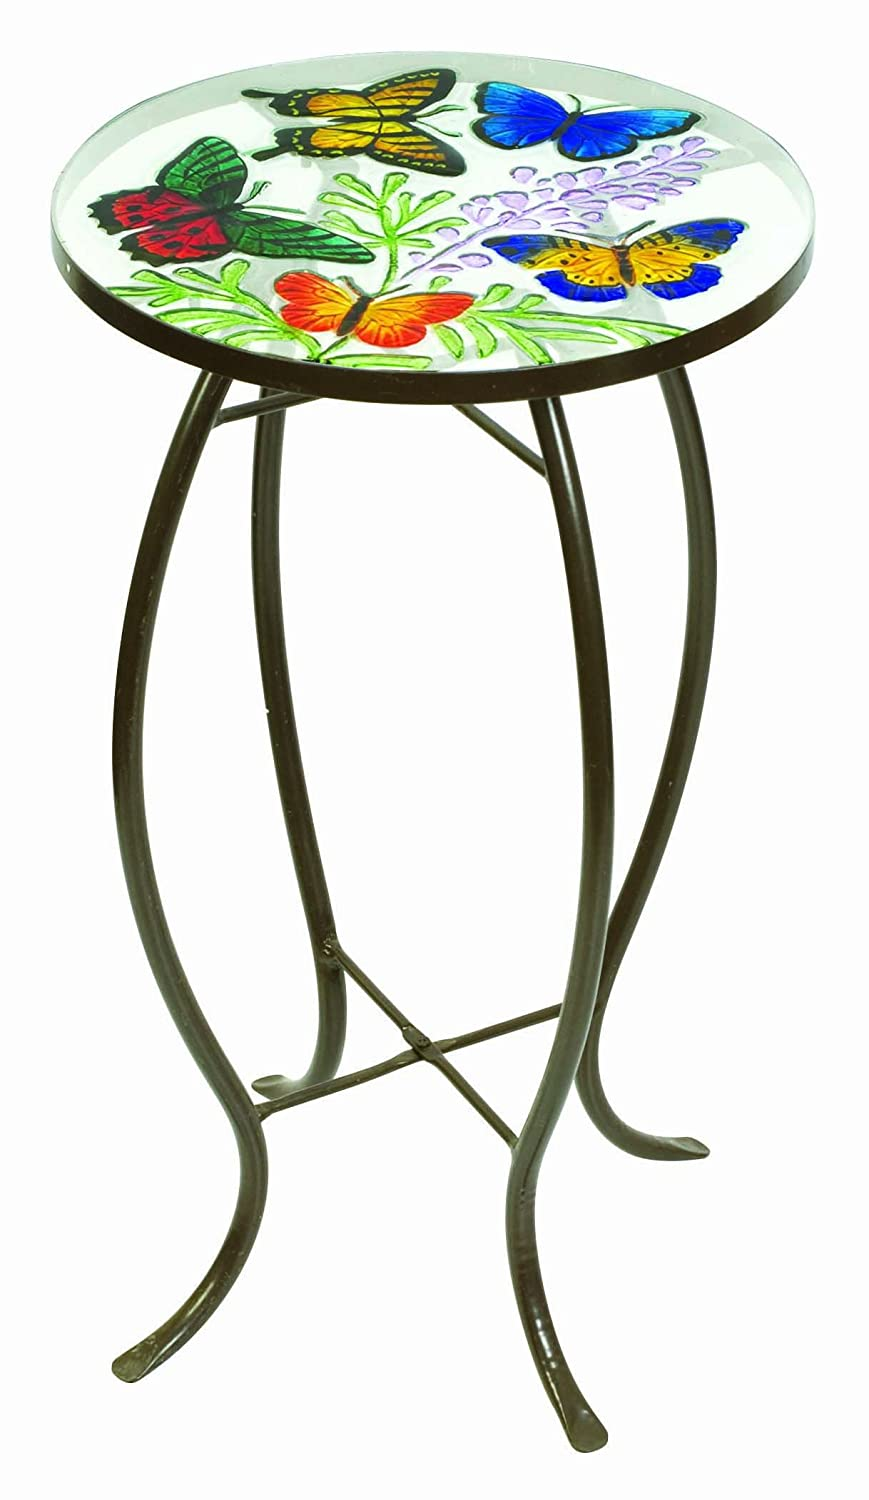 Charmant Evergreen Enterprises 2GM224 Butterflies Round Glass Top Side Table:  Amazon.ca: Patio, Lawn U0026 Garden